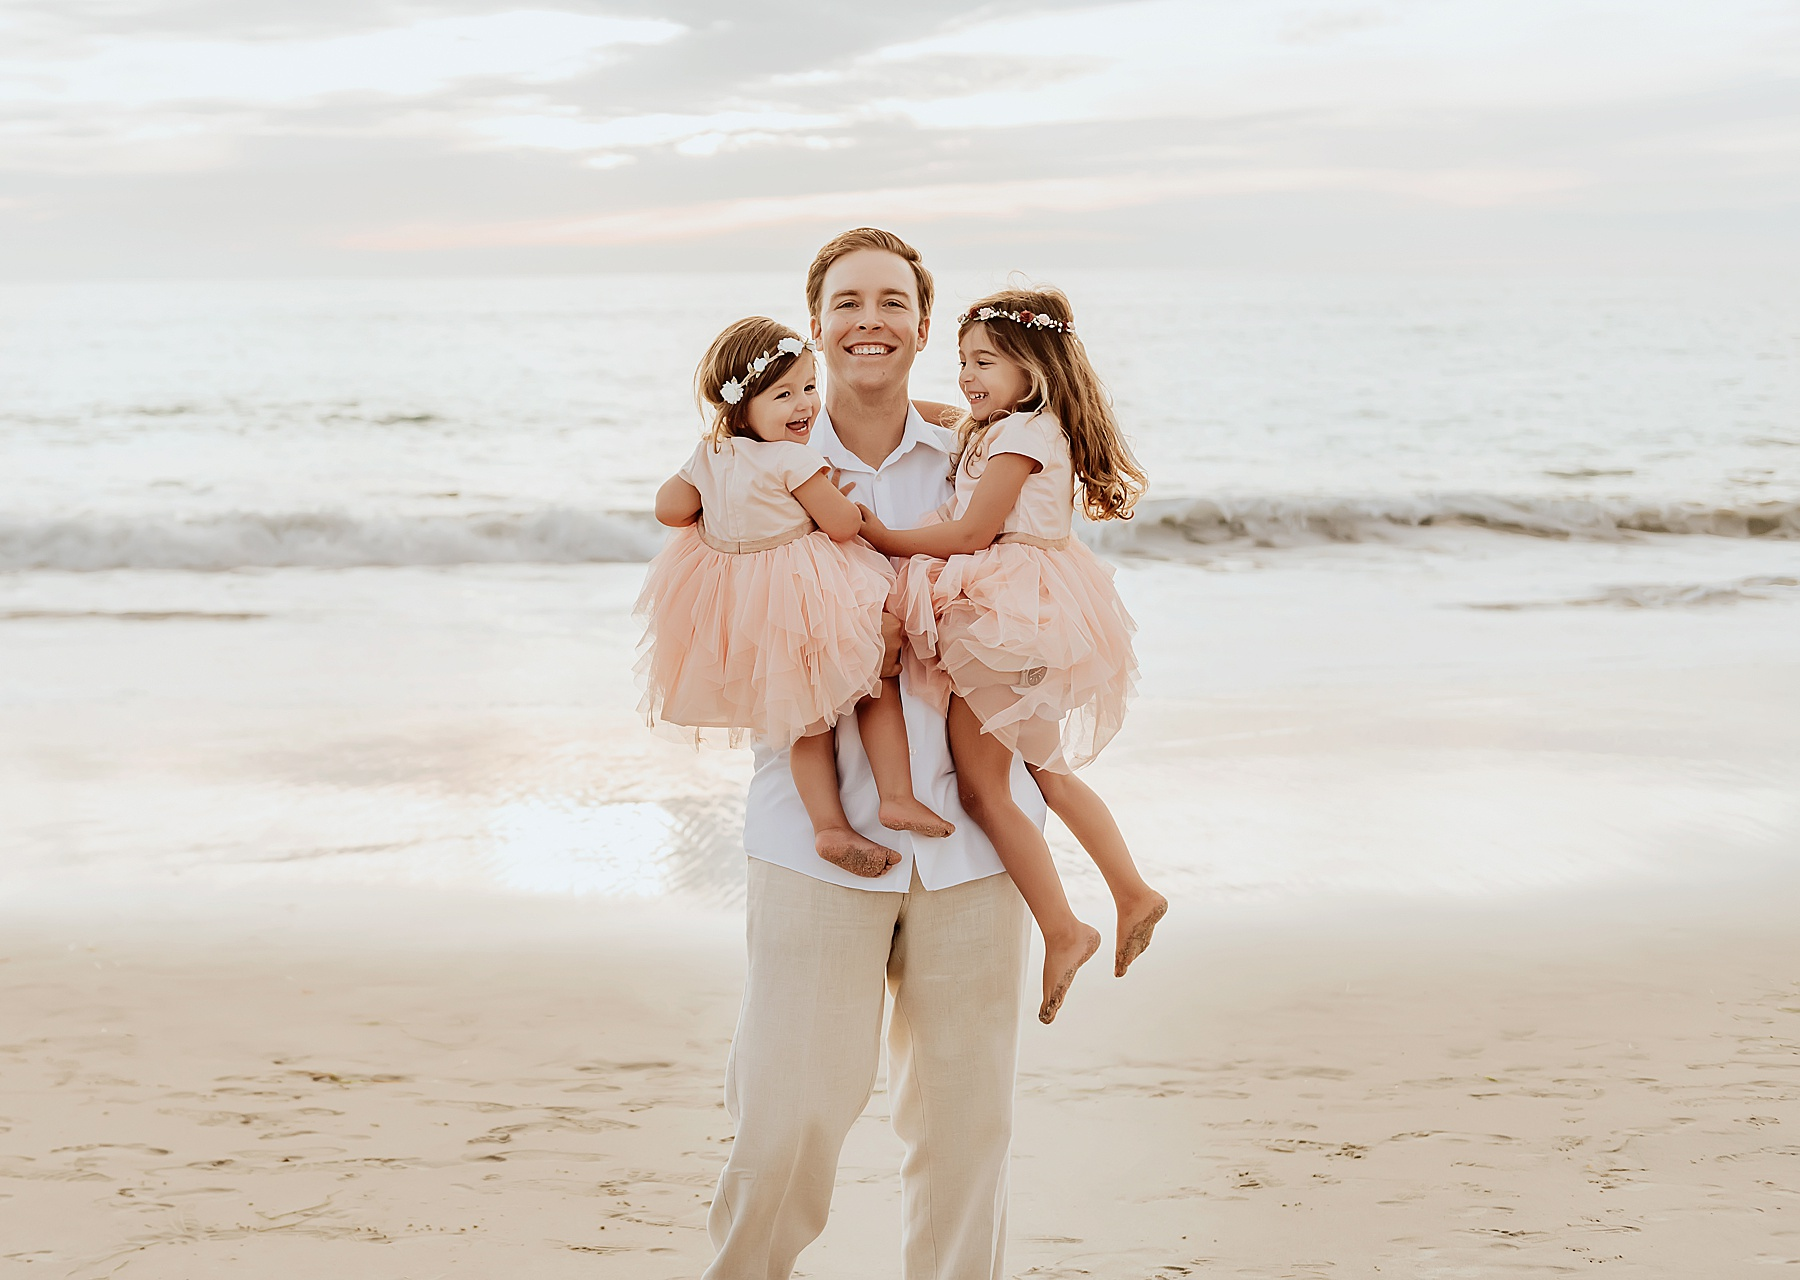 unique beach family photo ideas dad with daughters